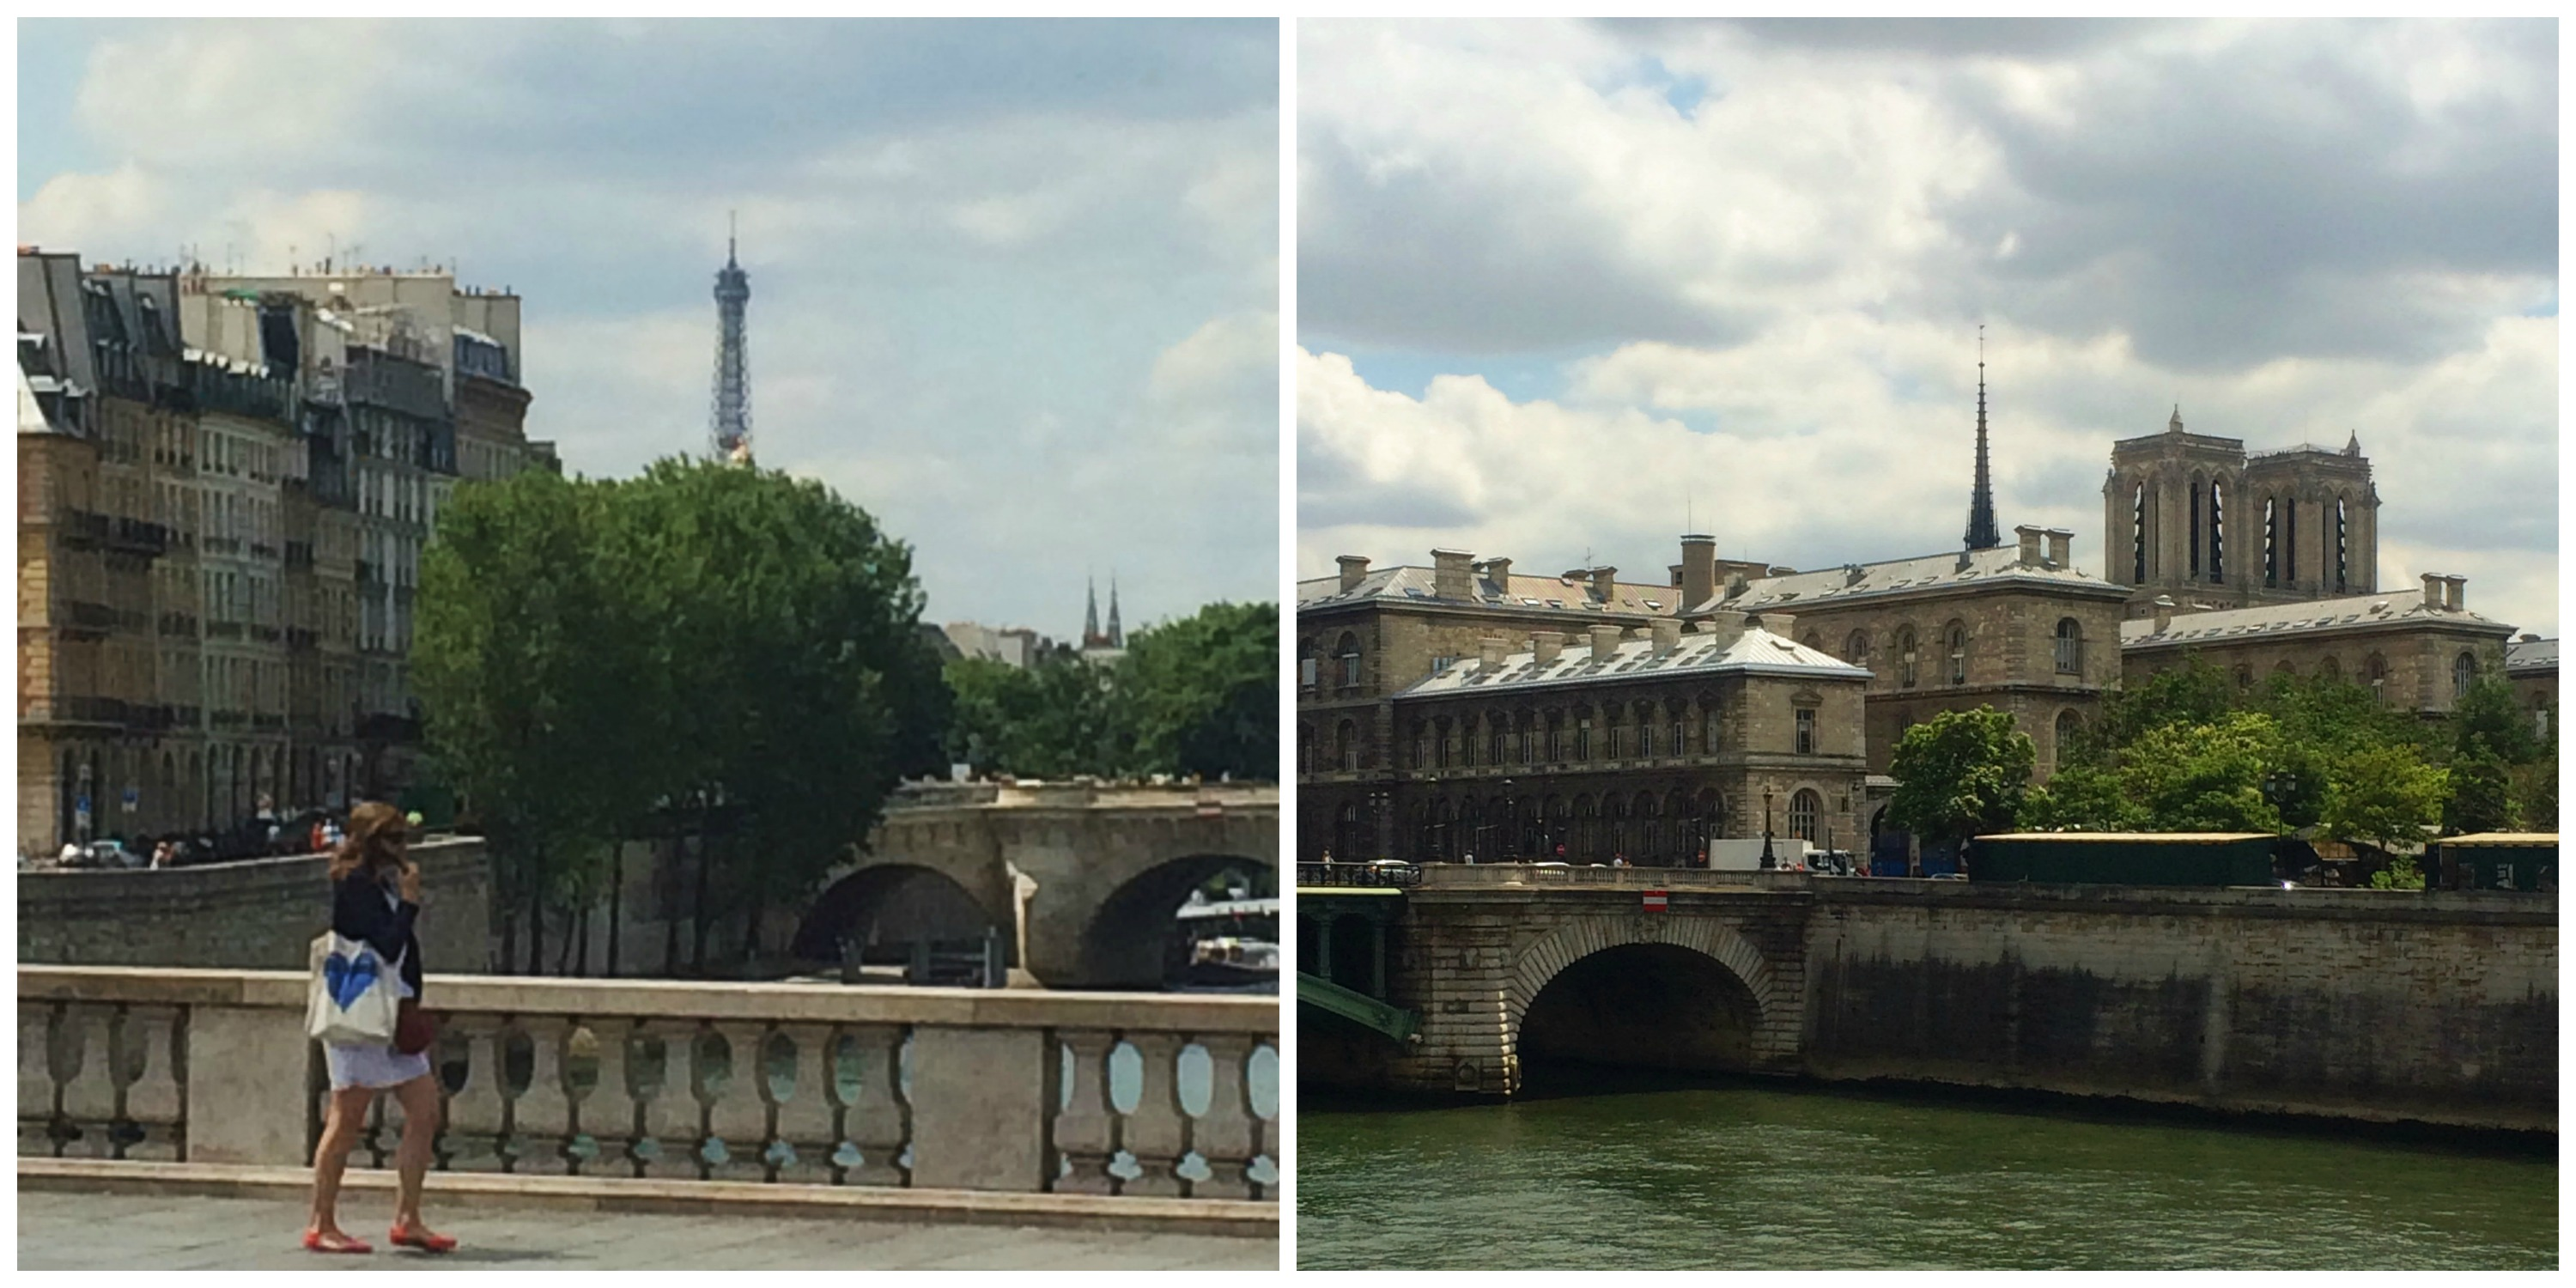 First Glimpse of the Eiffel